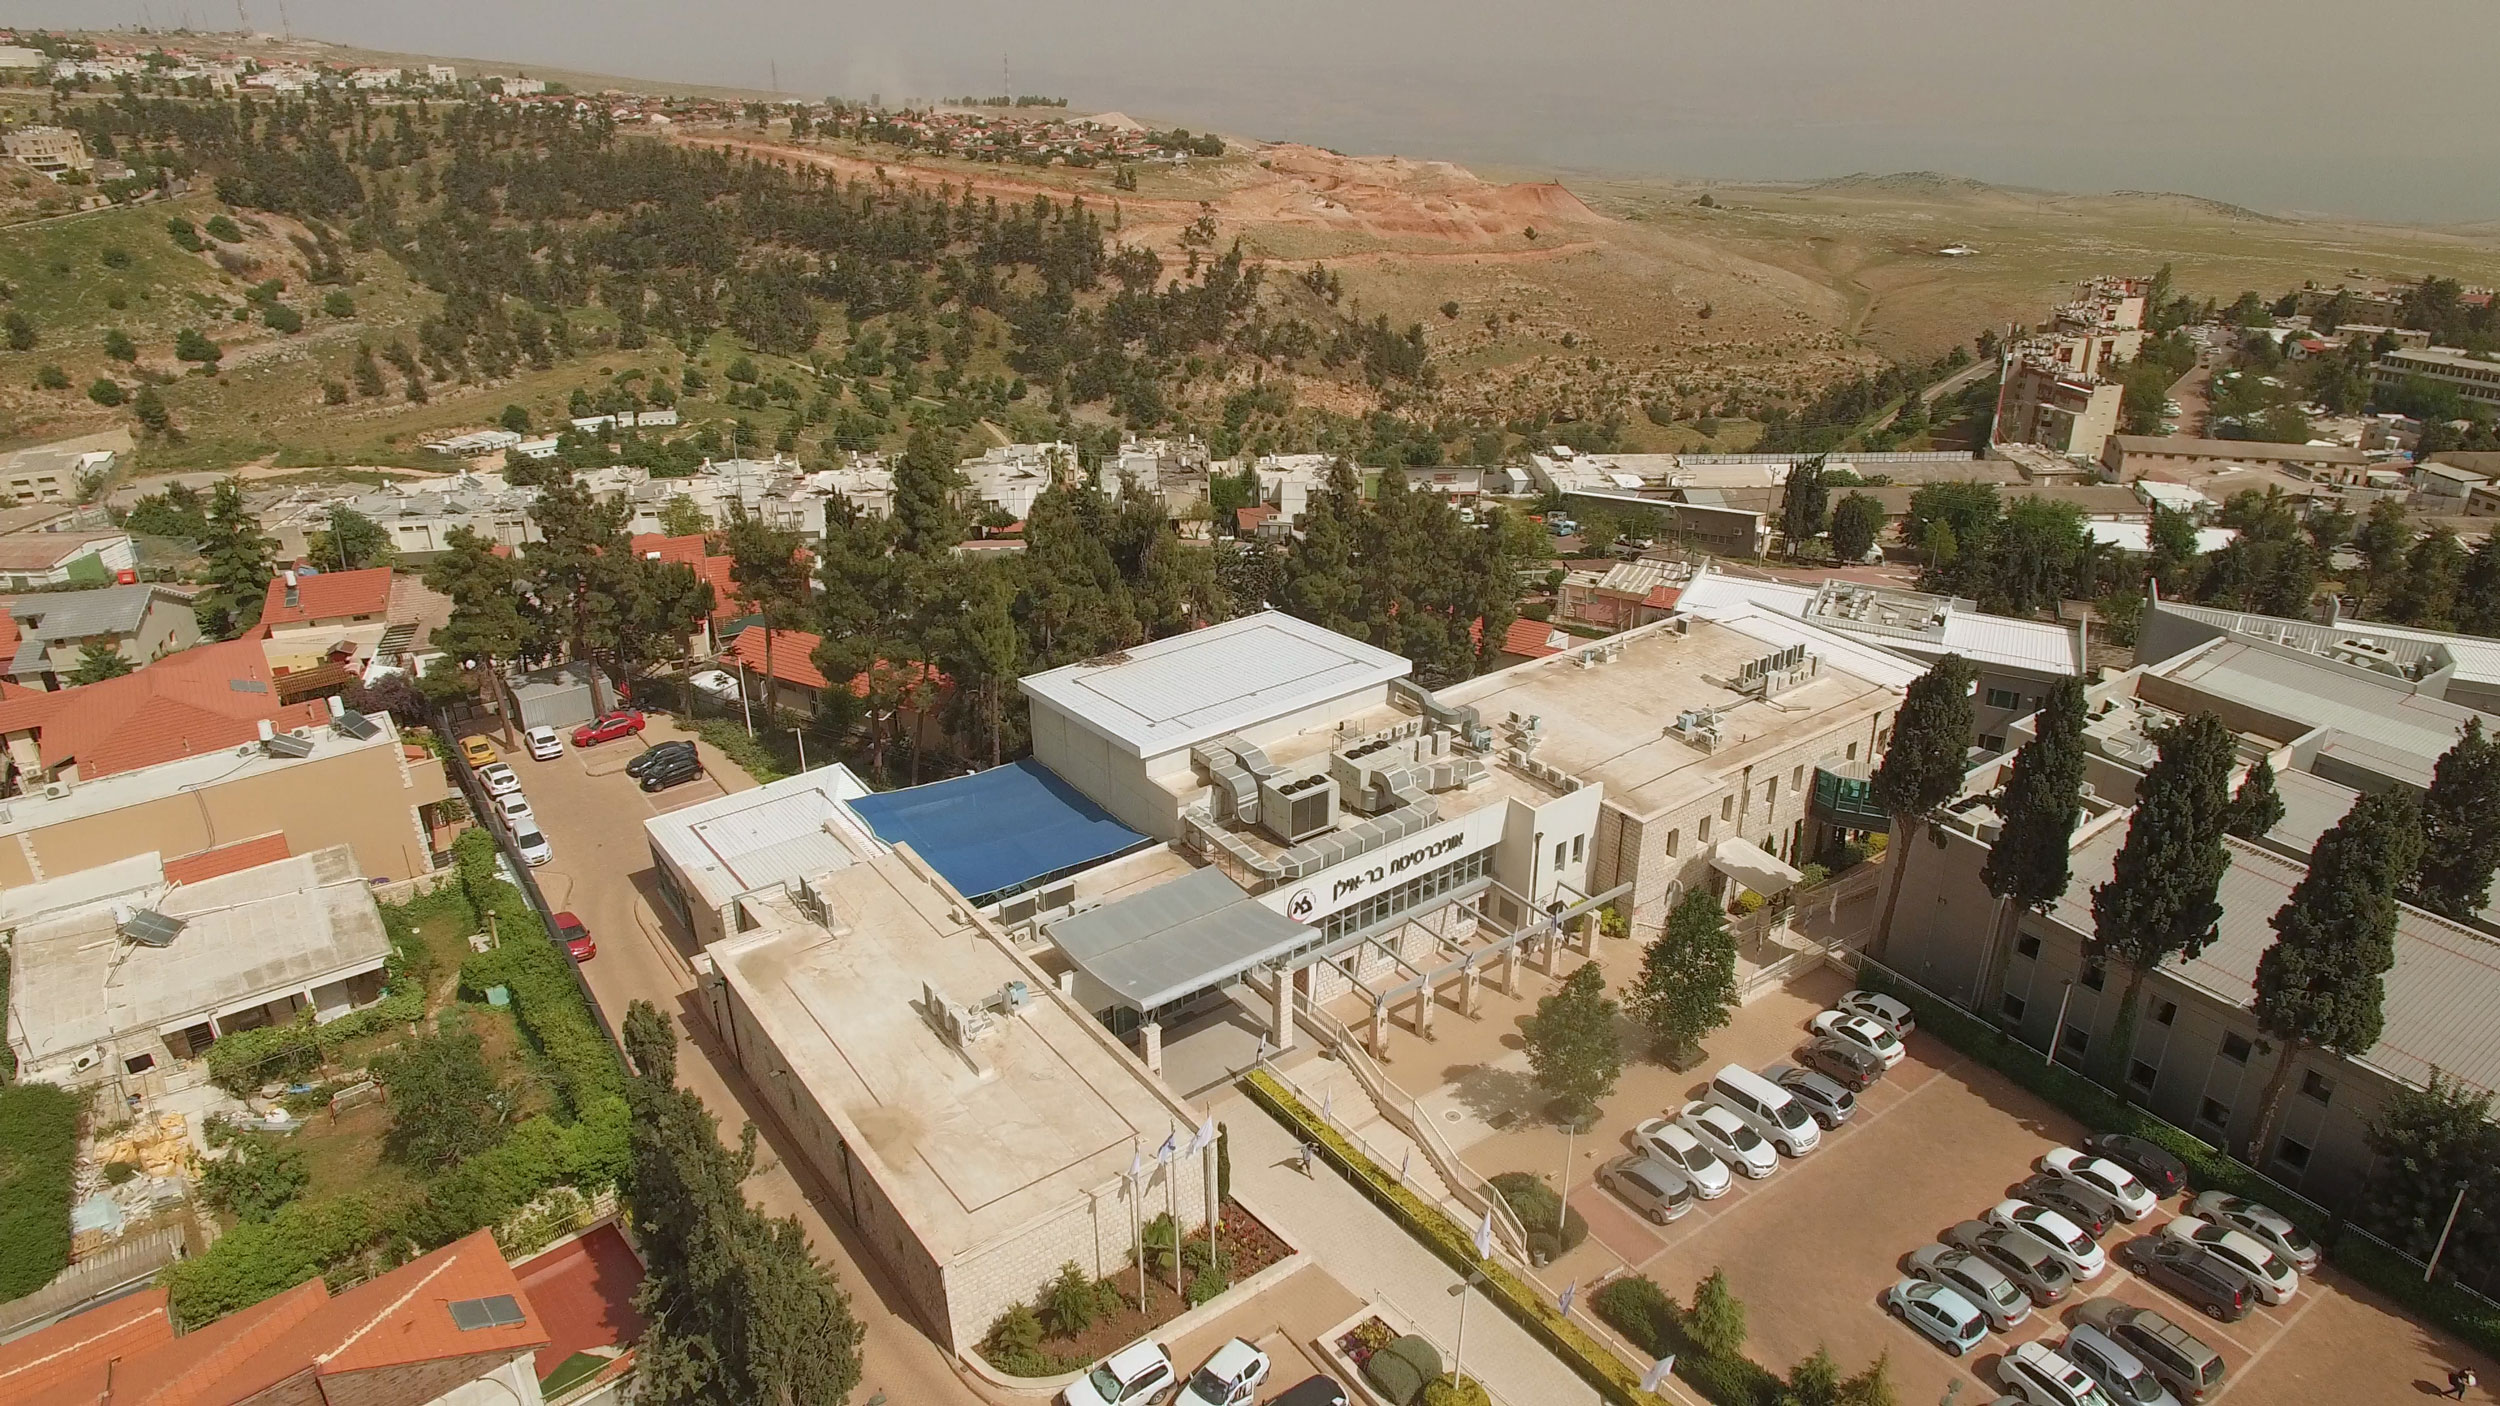 Many people in the Galilee live in villages without easy access to medical care, so the establishment of the medical school to teach students along with its commitment to its residents has made it an integral part of the community.